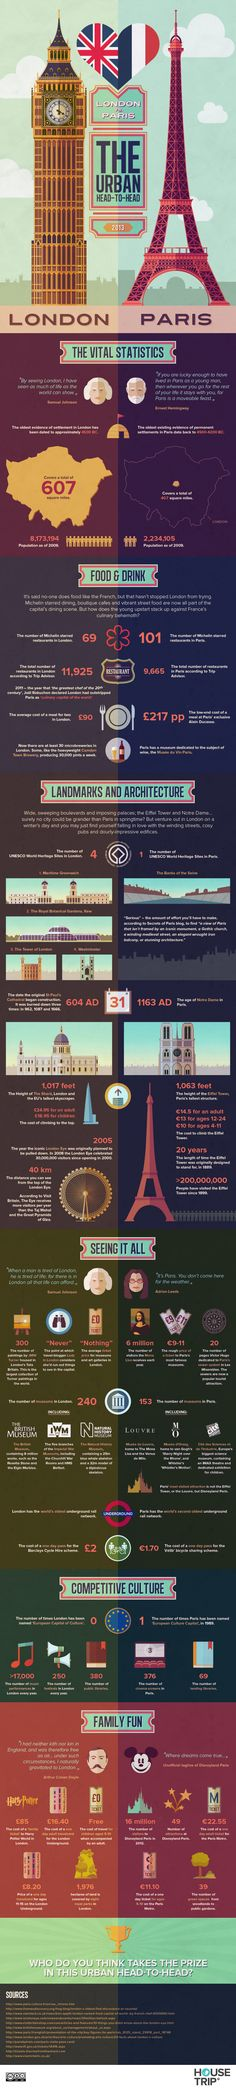 London Vs Paris: Two Cities Go Head-To-Head :)